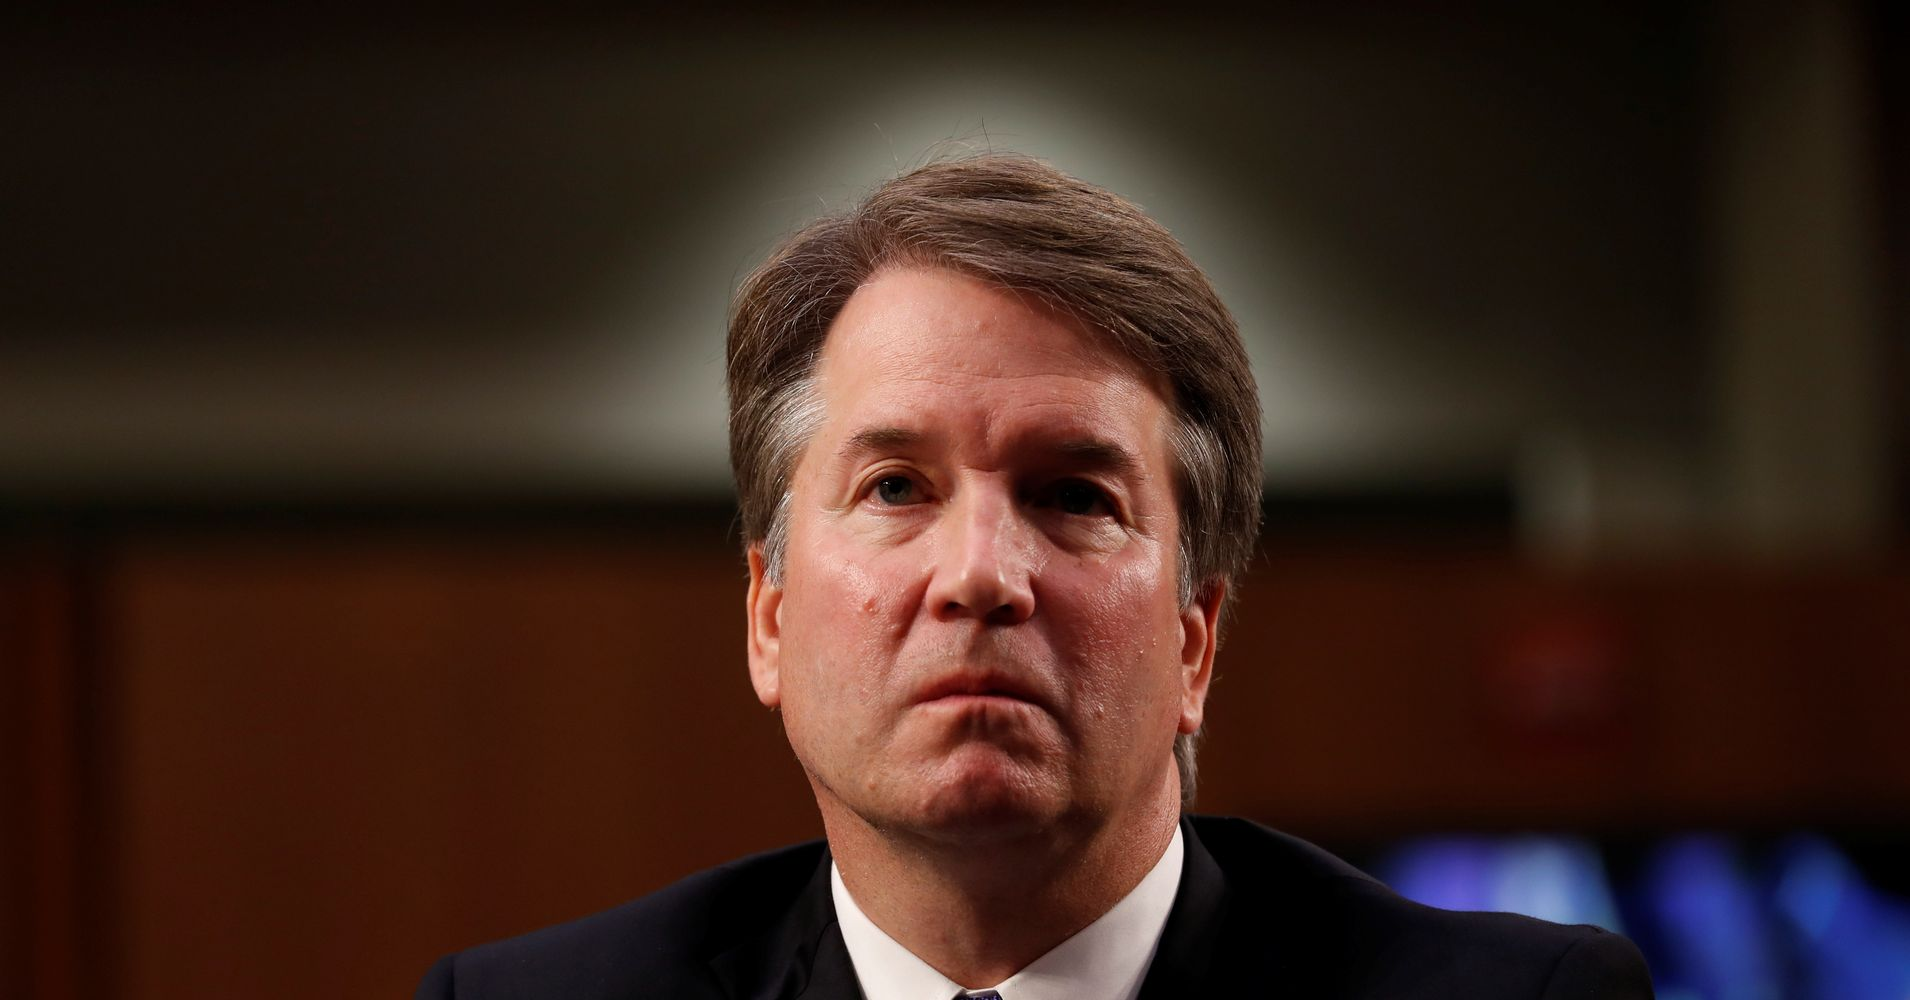 No Reputable Company Would Hire Someone Like Brett Kavanaugh At This Point